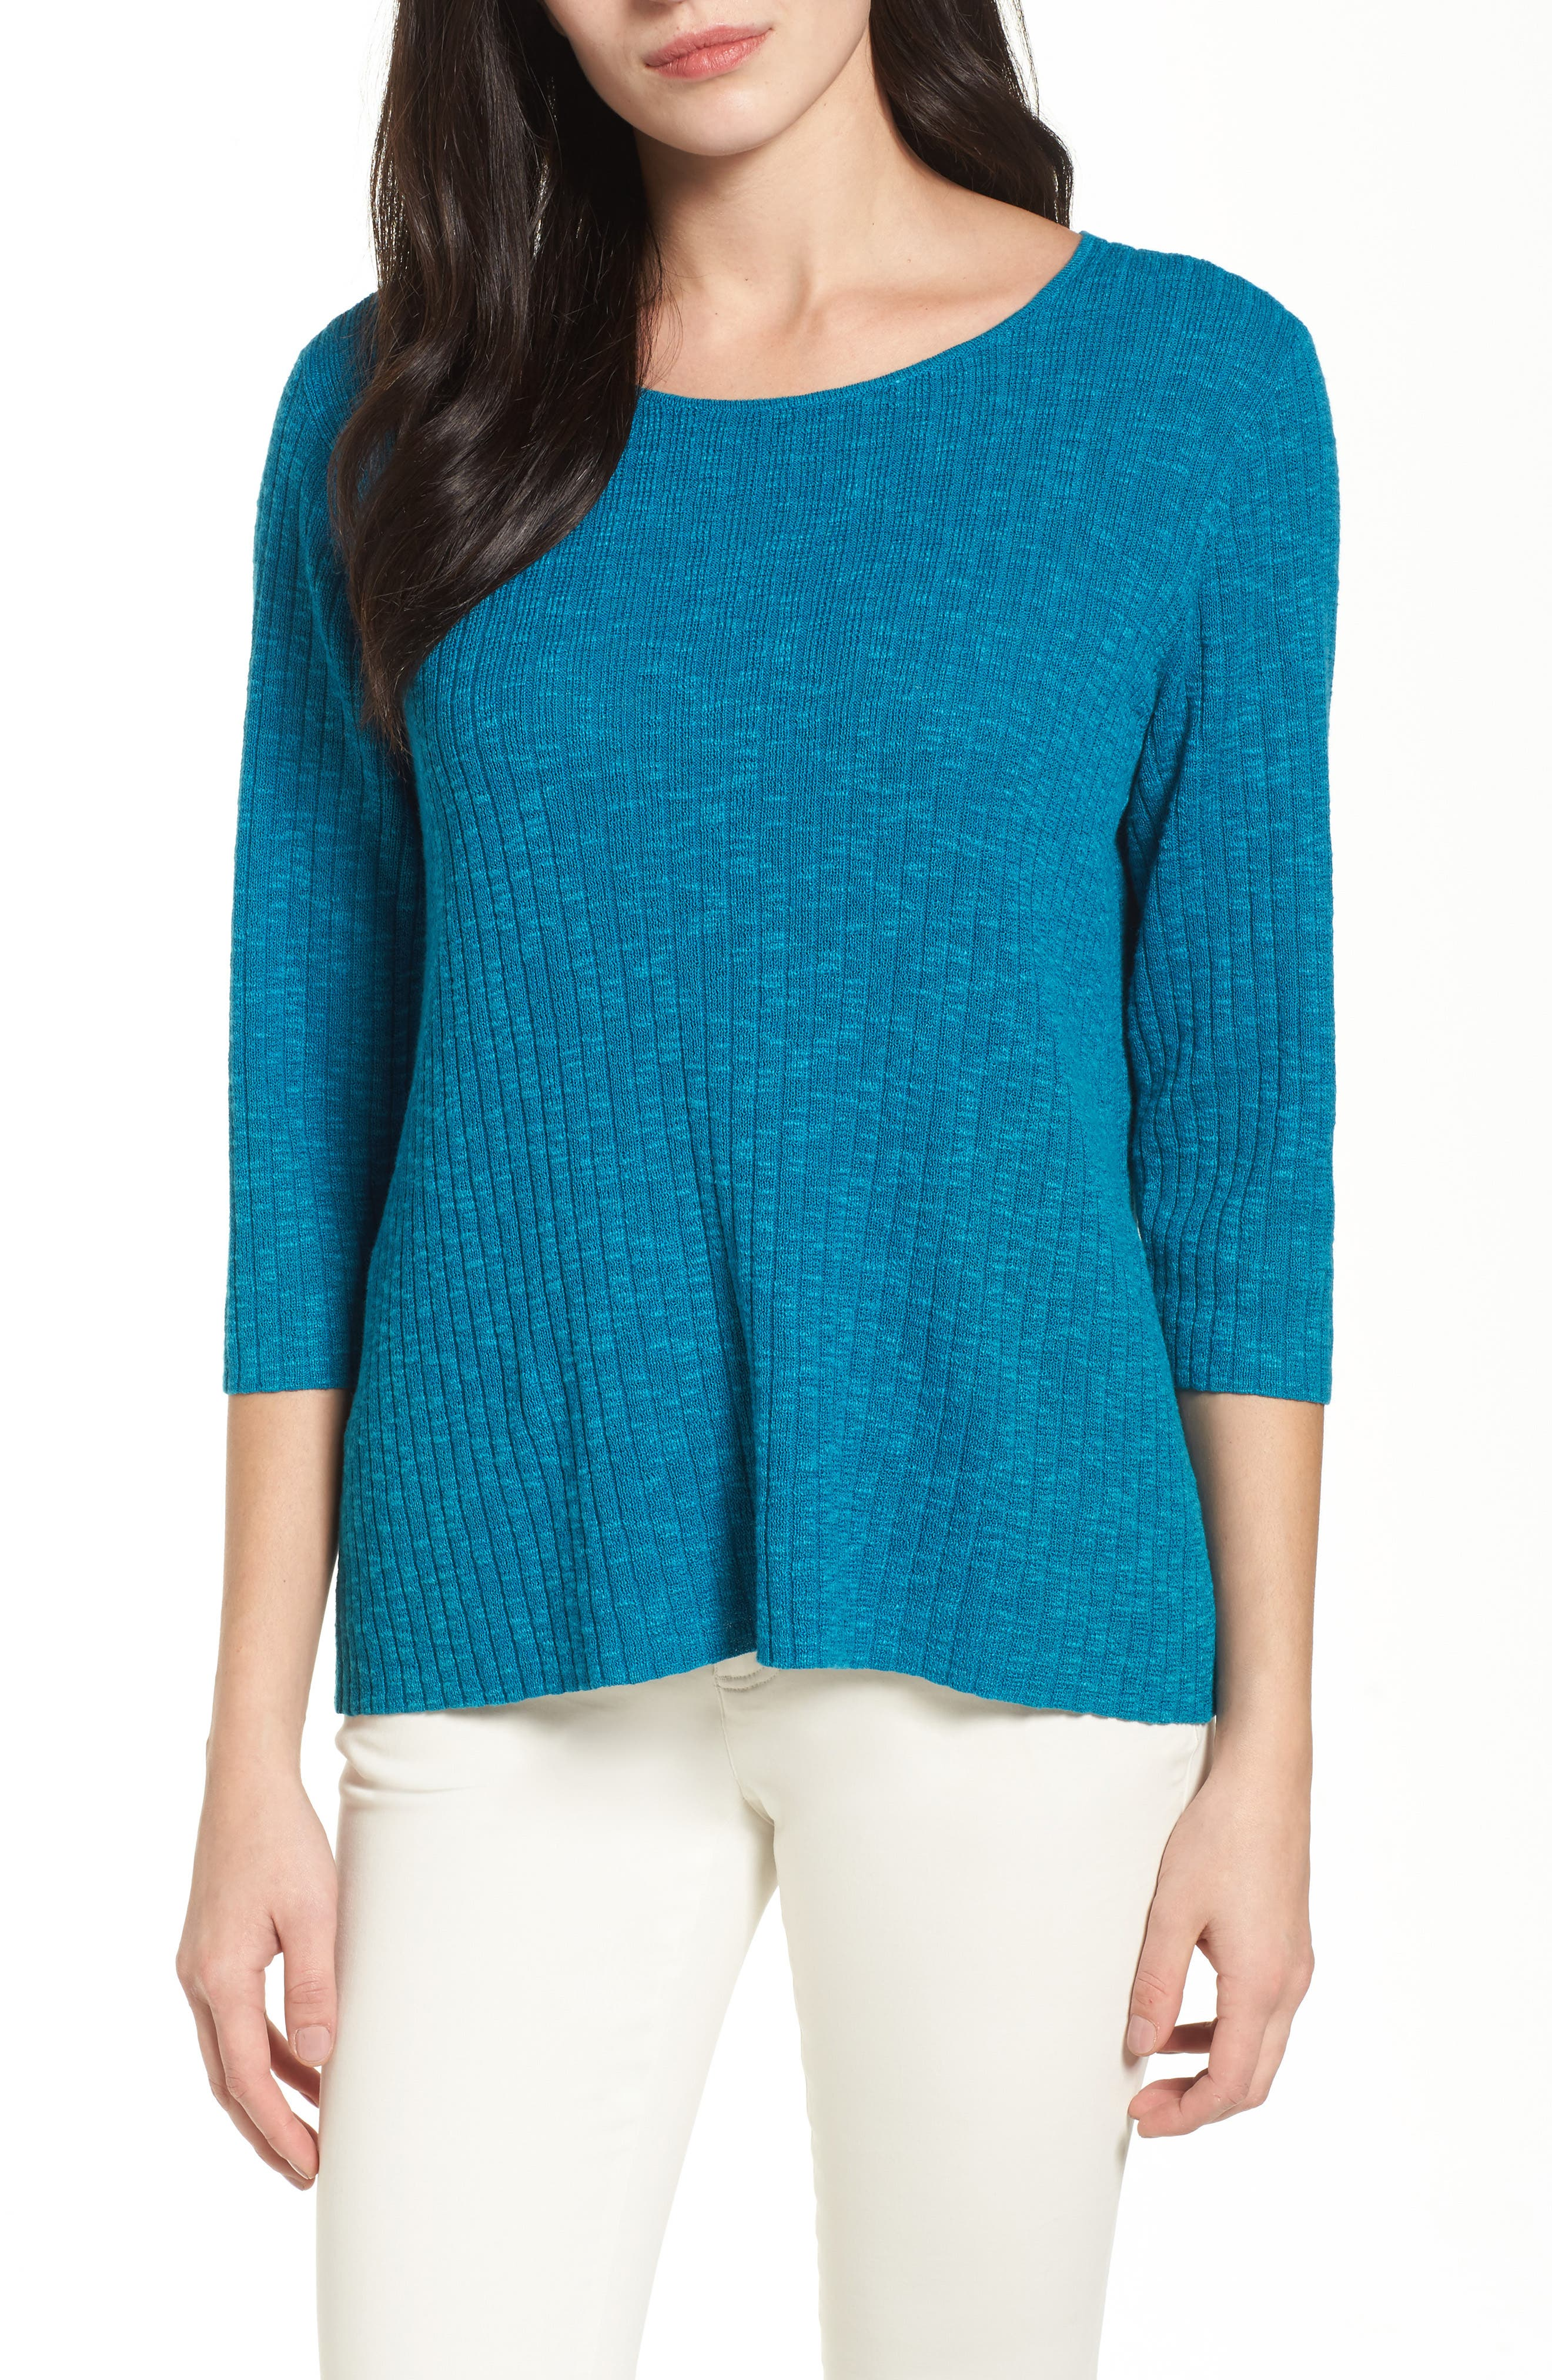 Alternate Image 1 Selected - Eileen Fisher Ribbed Organic Linen & Cotton Sweater